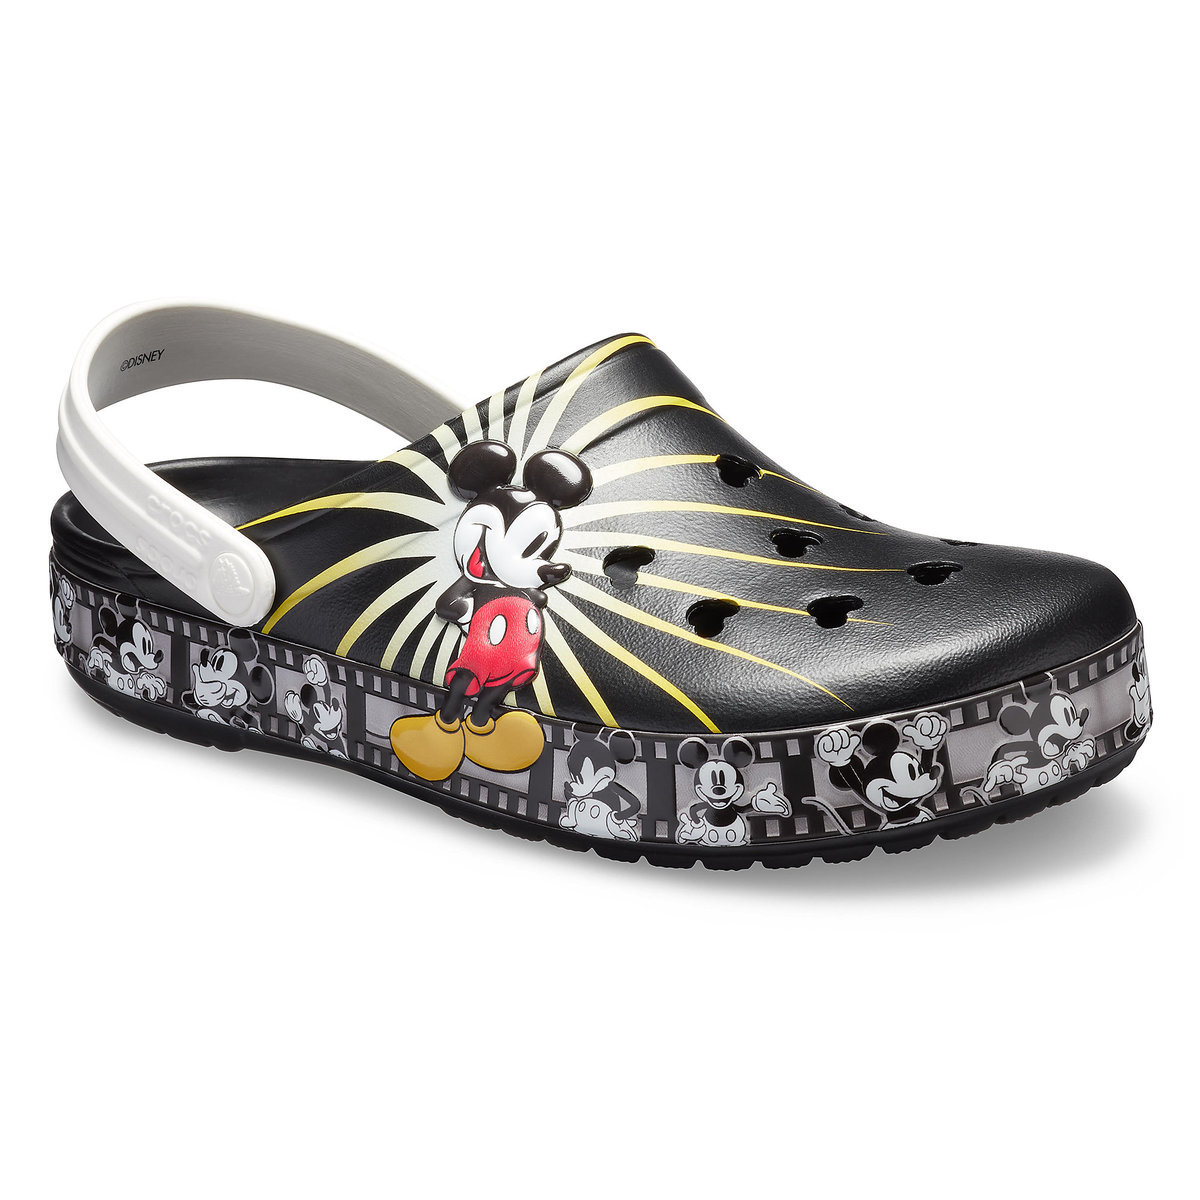 b3d4712c944 Product Image of Mickey Mouse Clogs for Adults by Crocs # 1